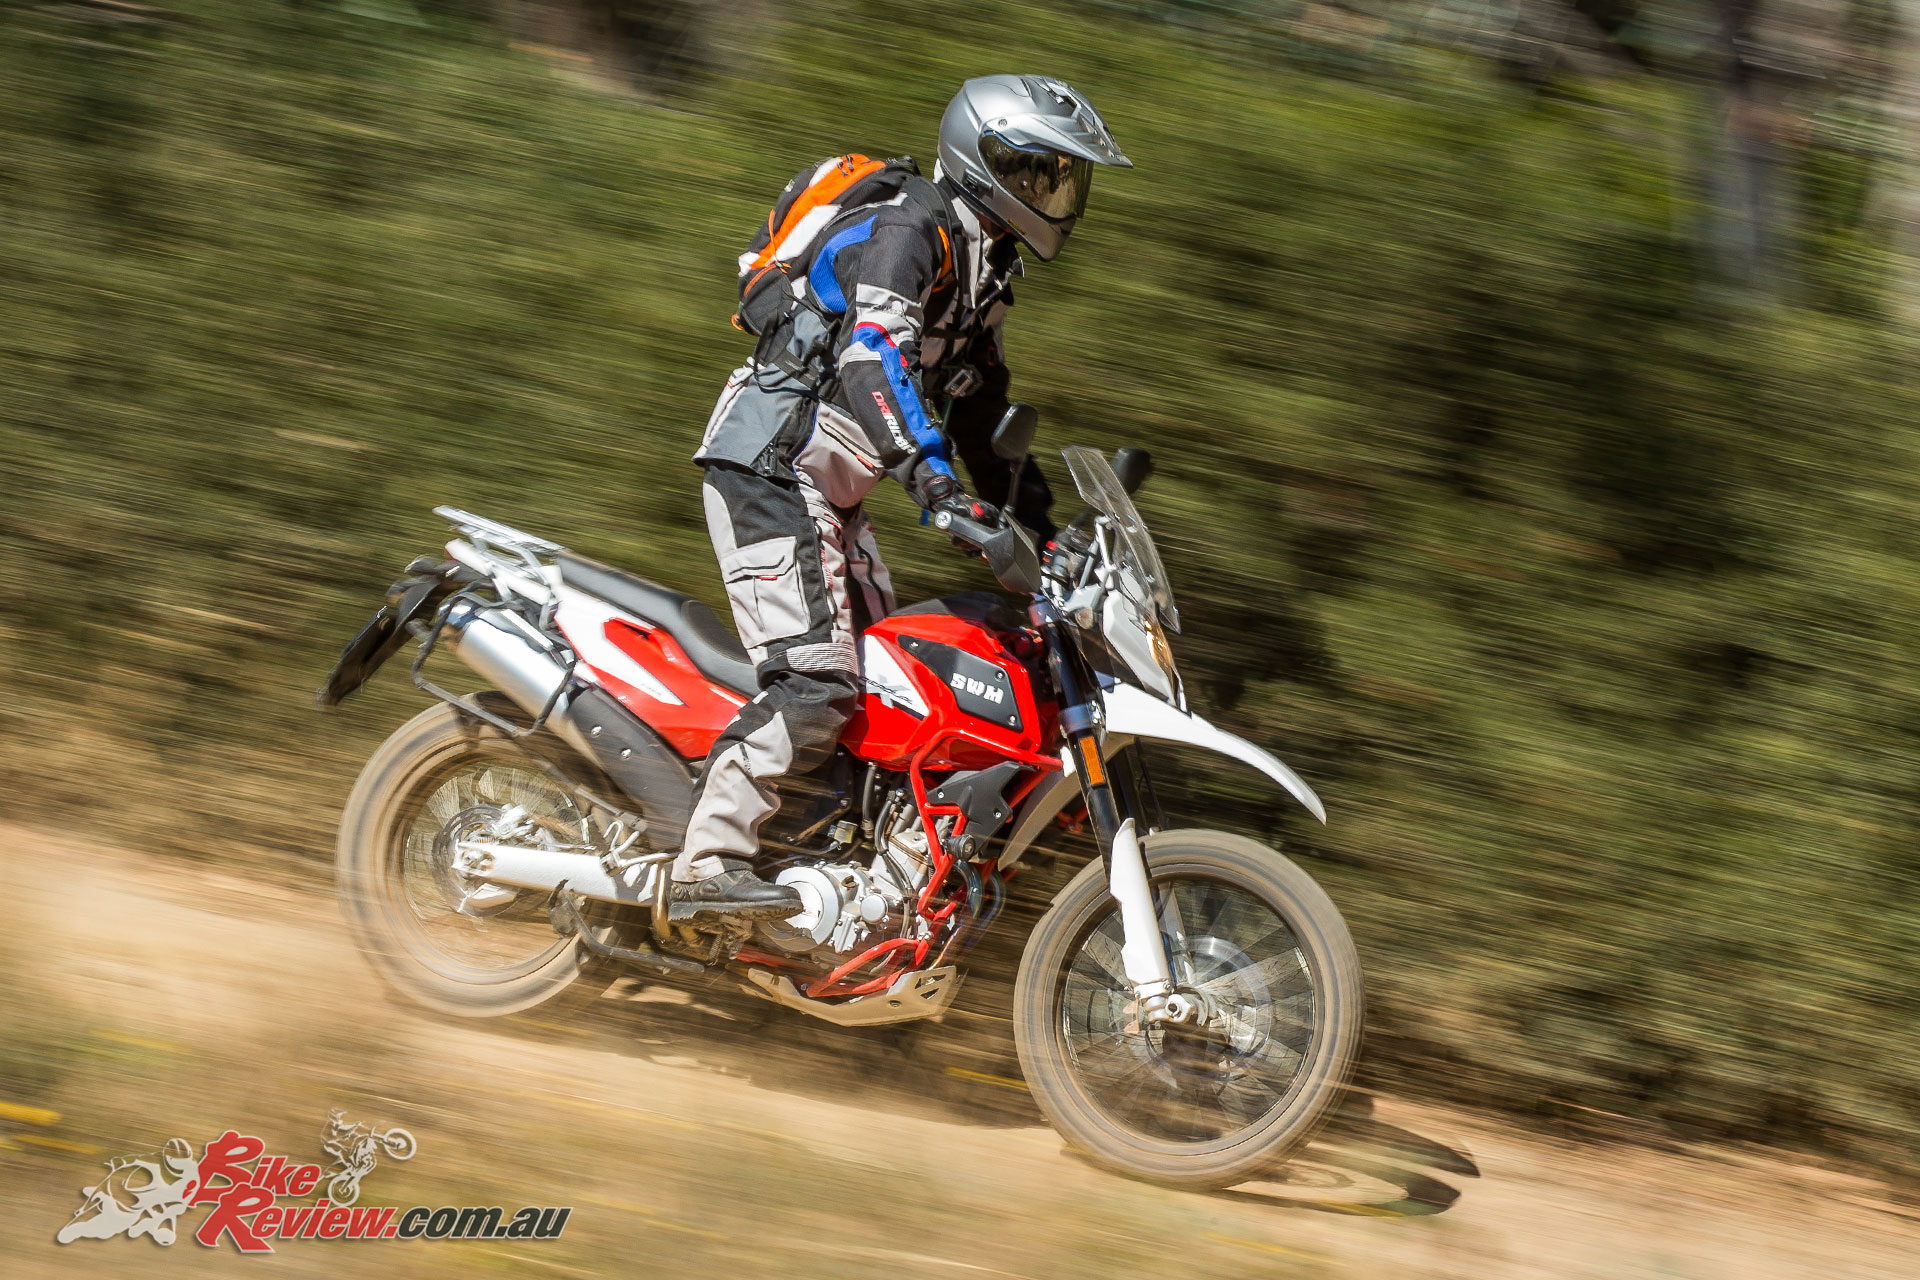 Braking limitations are felt due to the ABS system off road, where the front can't be turned off, only the rear